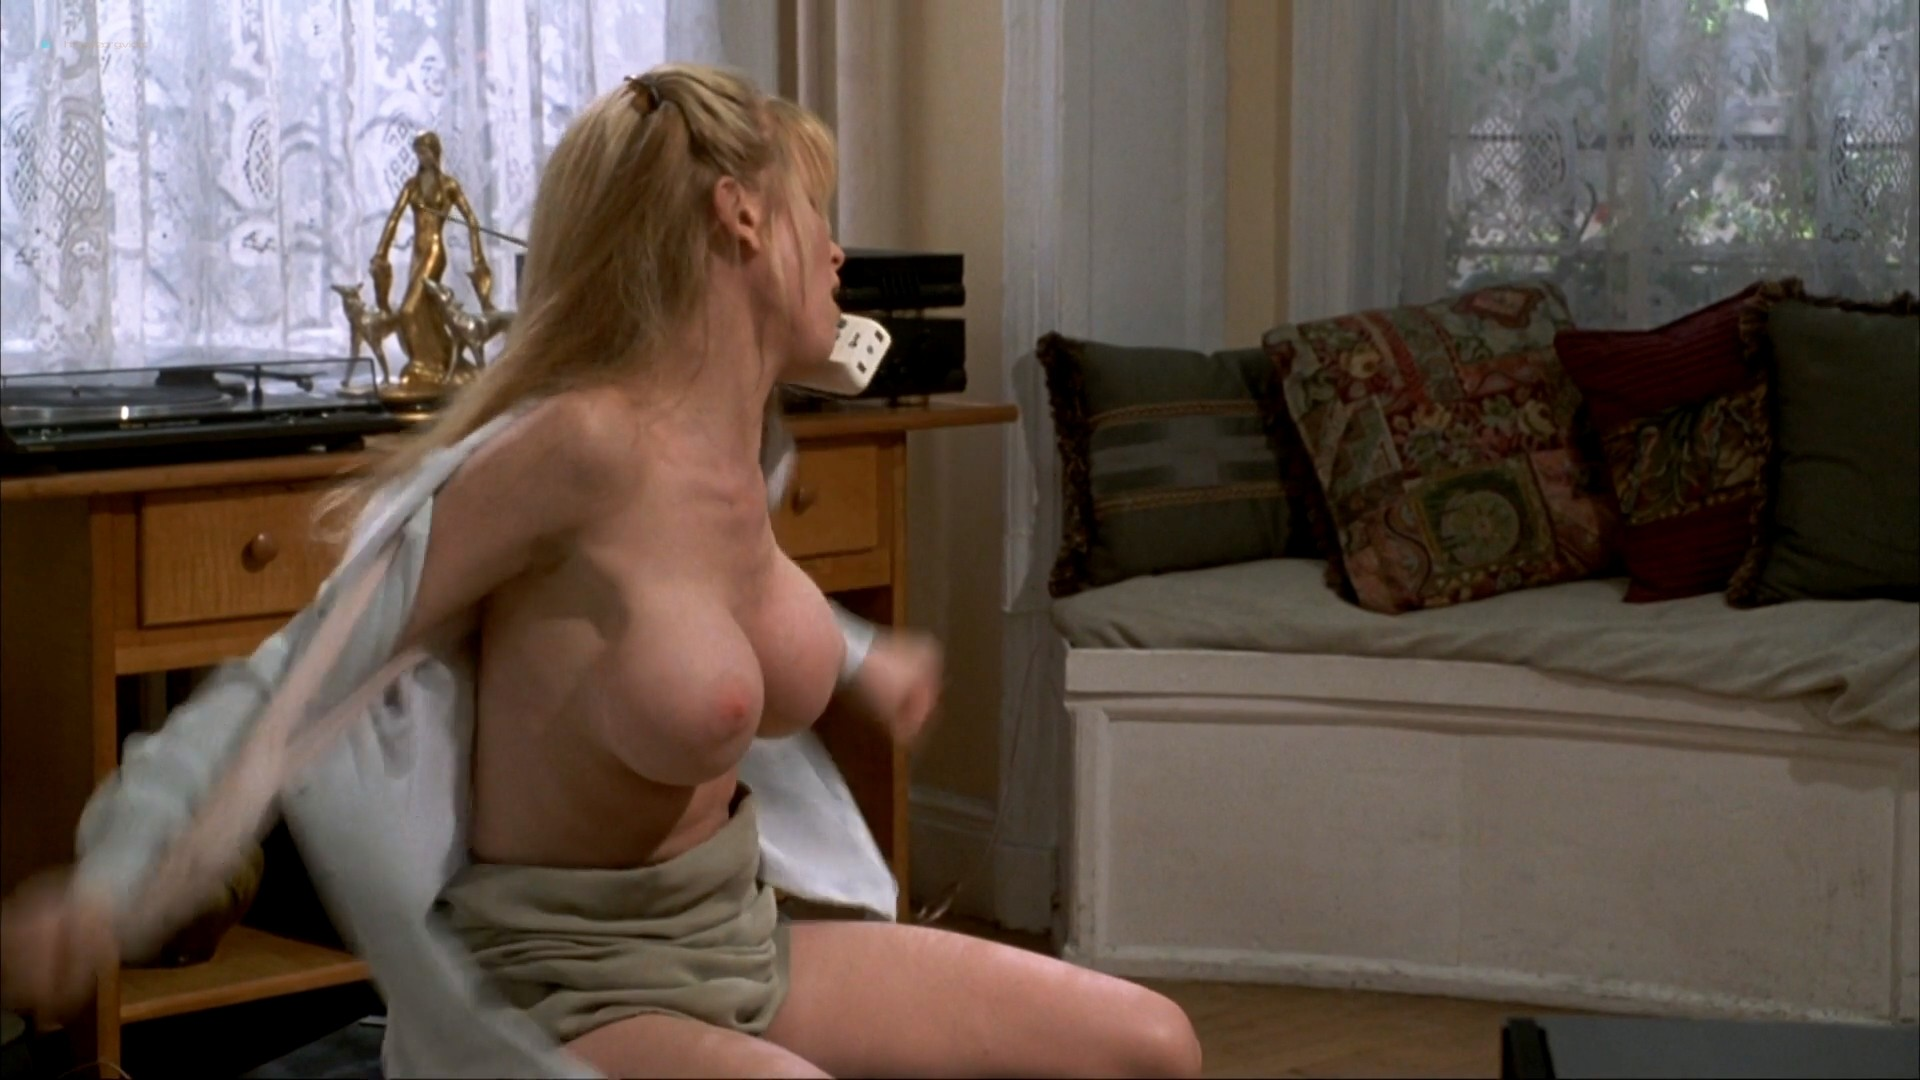 Melanie Good nude Jenna Jameson nude full frontal - Private Parts (1997) 1080p BluRay (3)